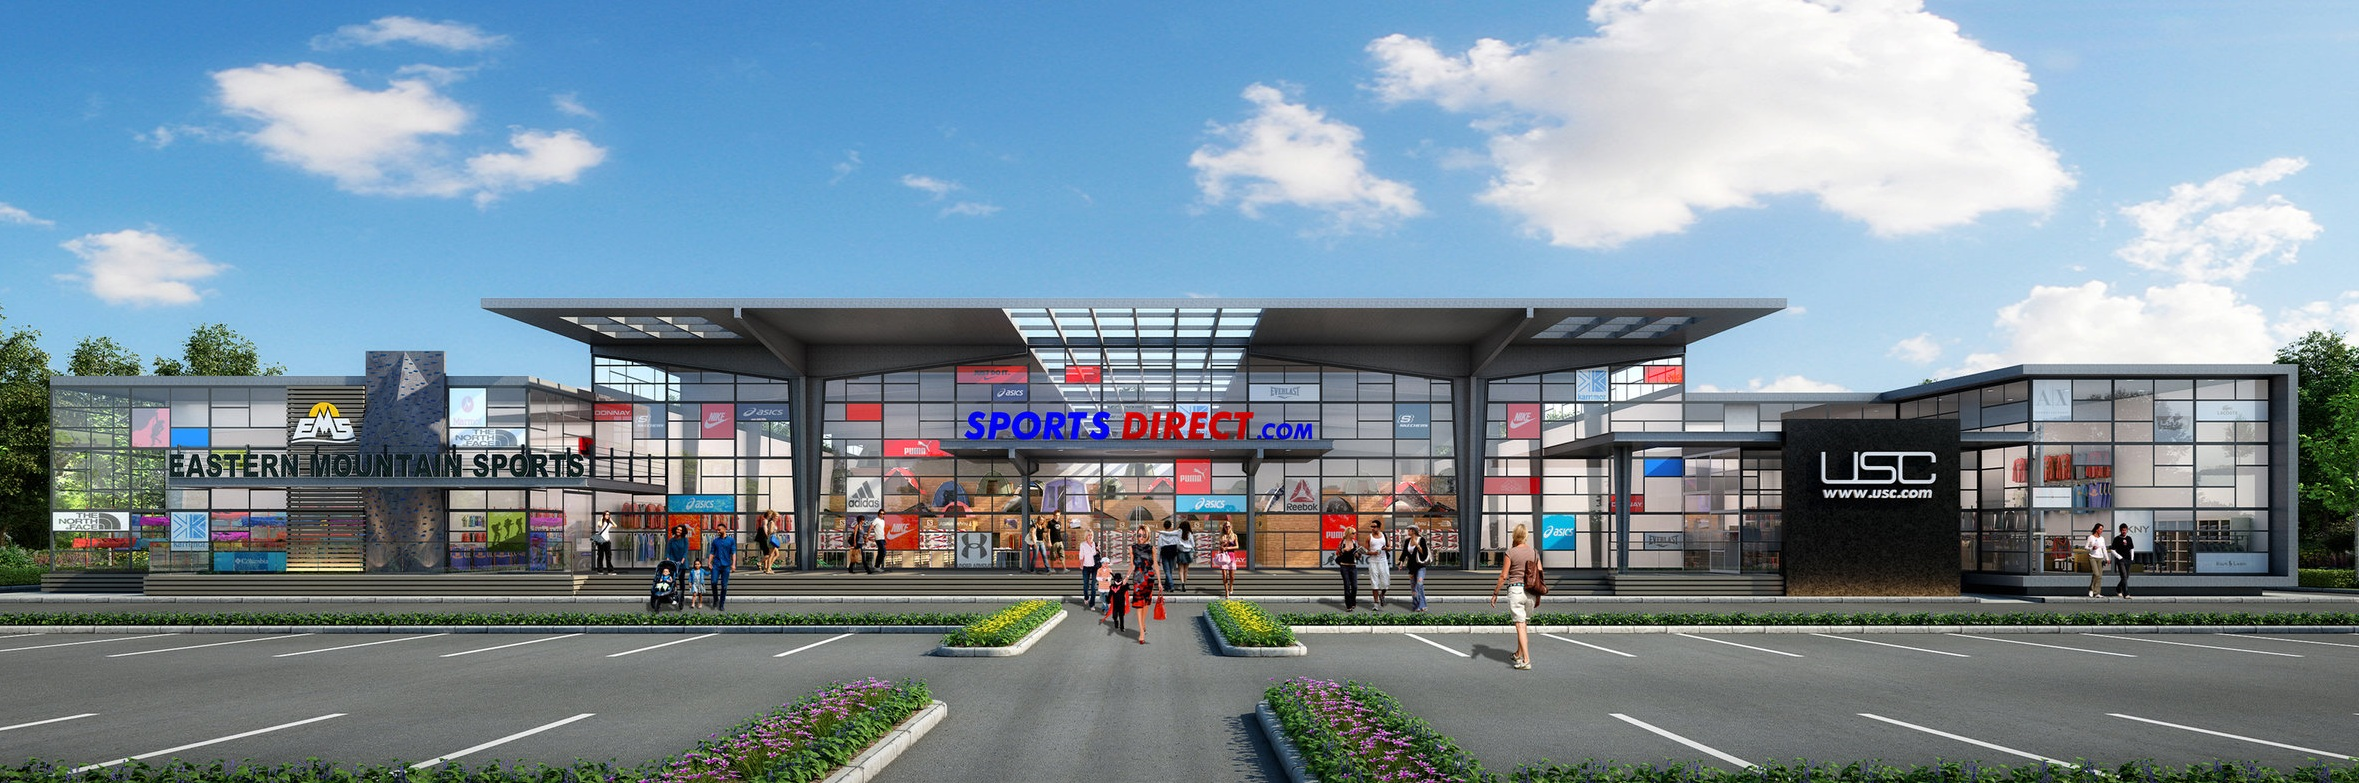 EMS_Sports Direct_USC - Exterior View 1.jpg